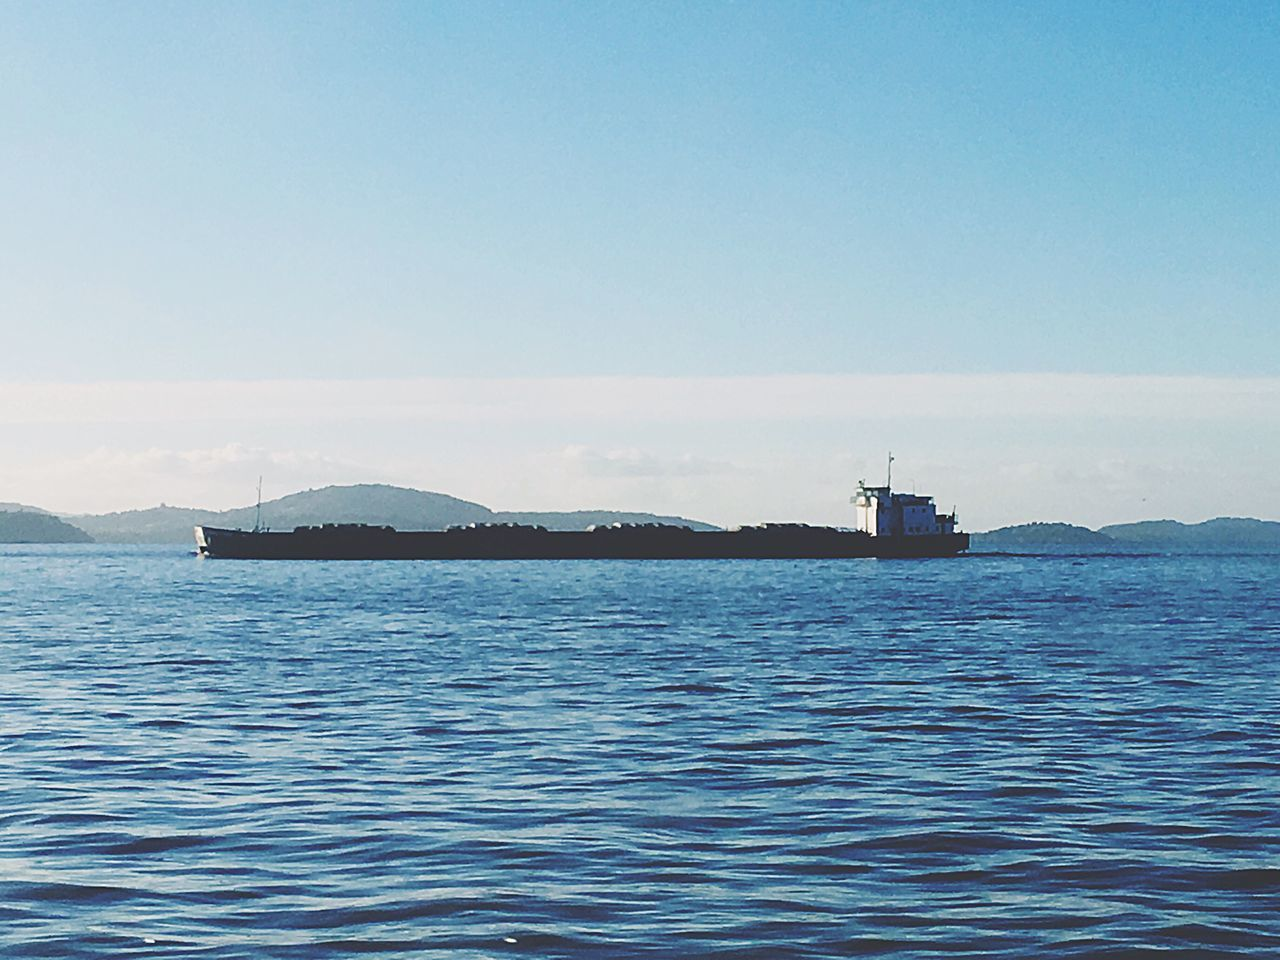 water, sea, nature, transportation, outdoors, tranquility, beauty in nature, nautical vessel, scenics, mountain, no people, mode of transport, day, waterfront, tranquil scene, copy space, blue, sky, rippled, mountain range, clear sky, sailing